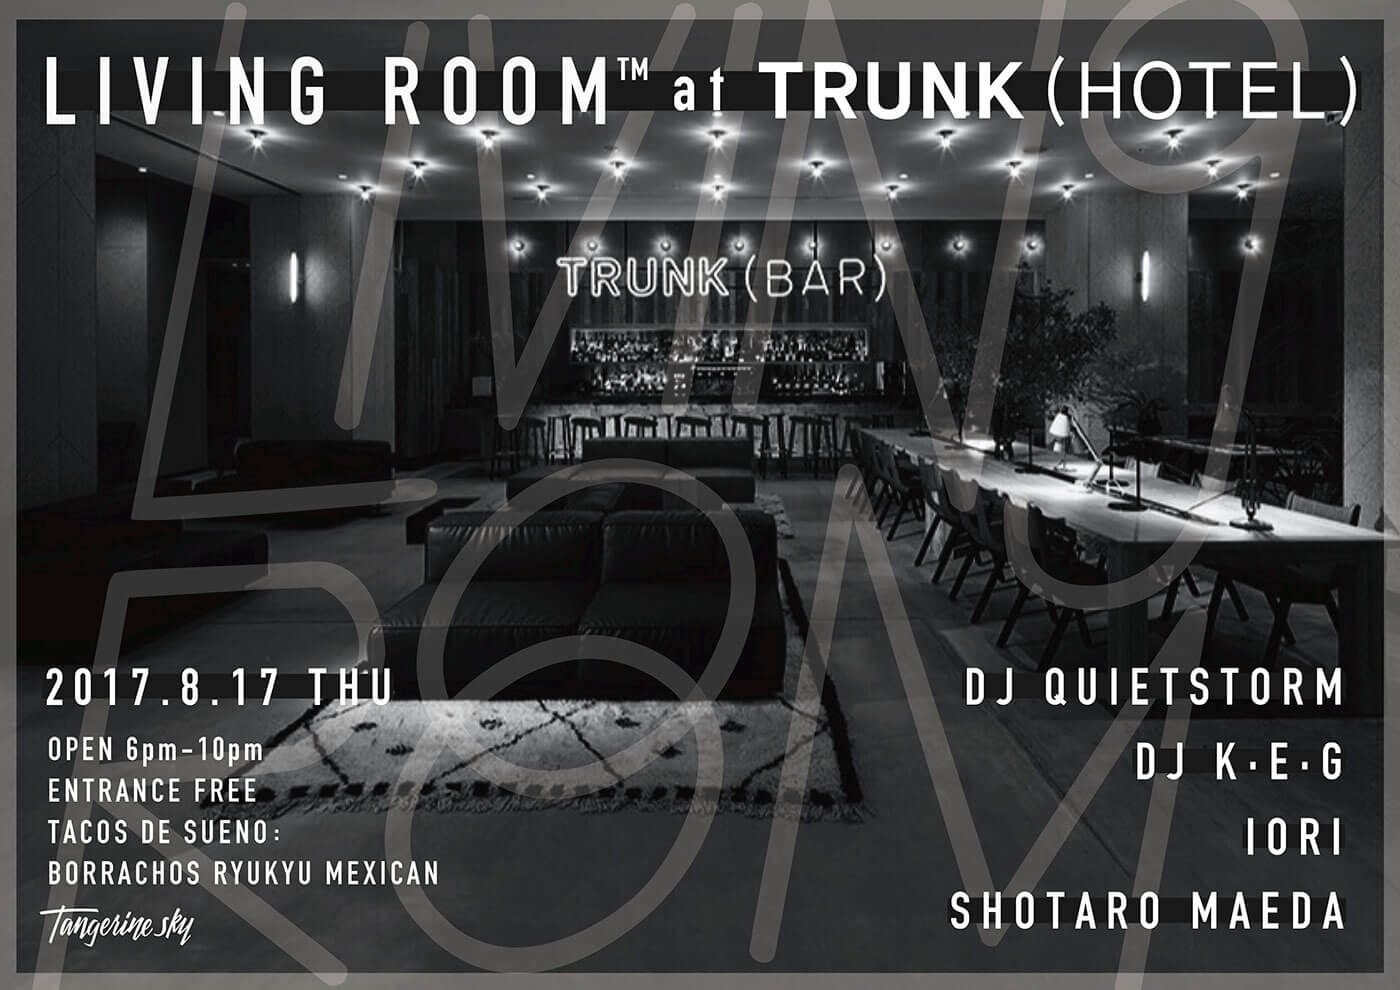 2017.8.17 TRUNK(HOTEL) × LIVING ROOM